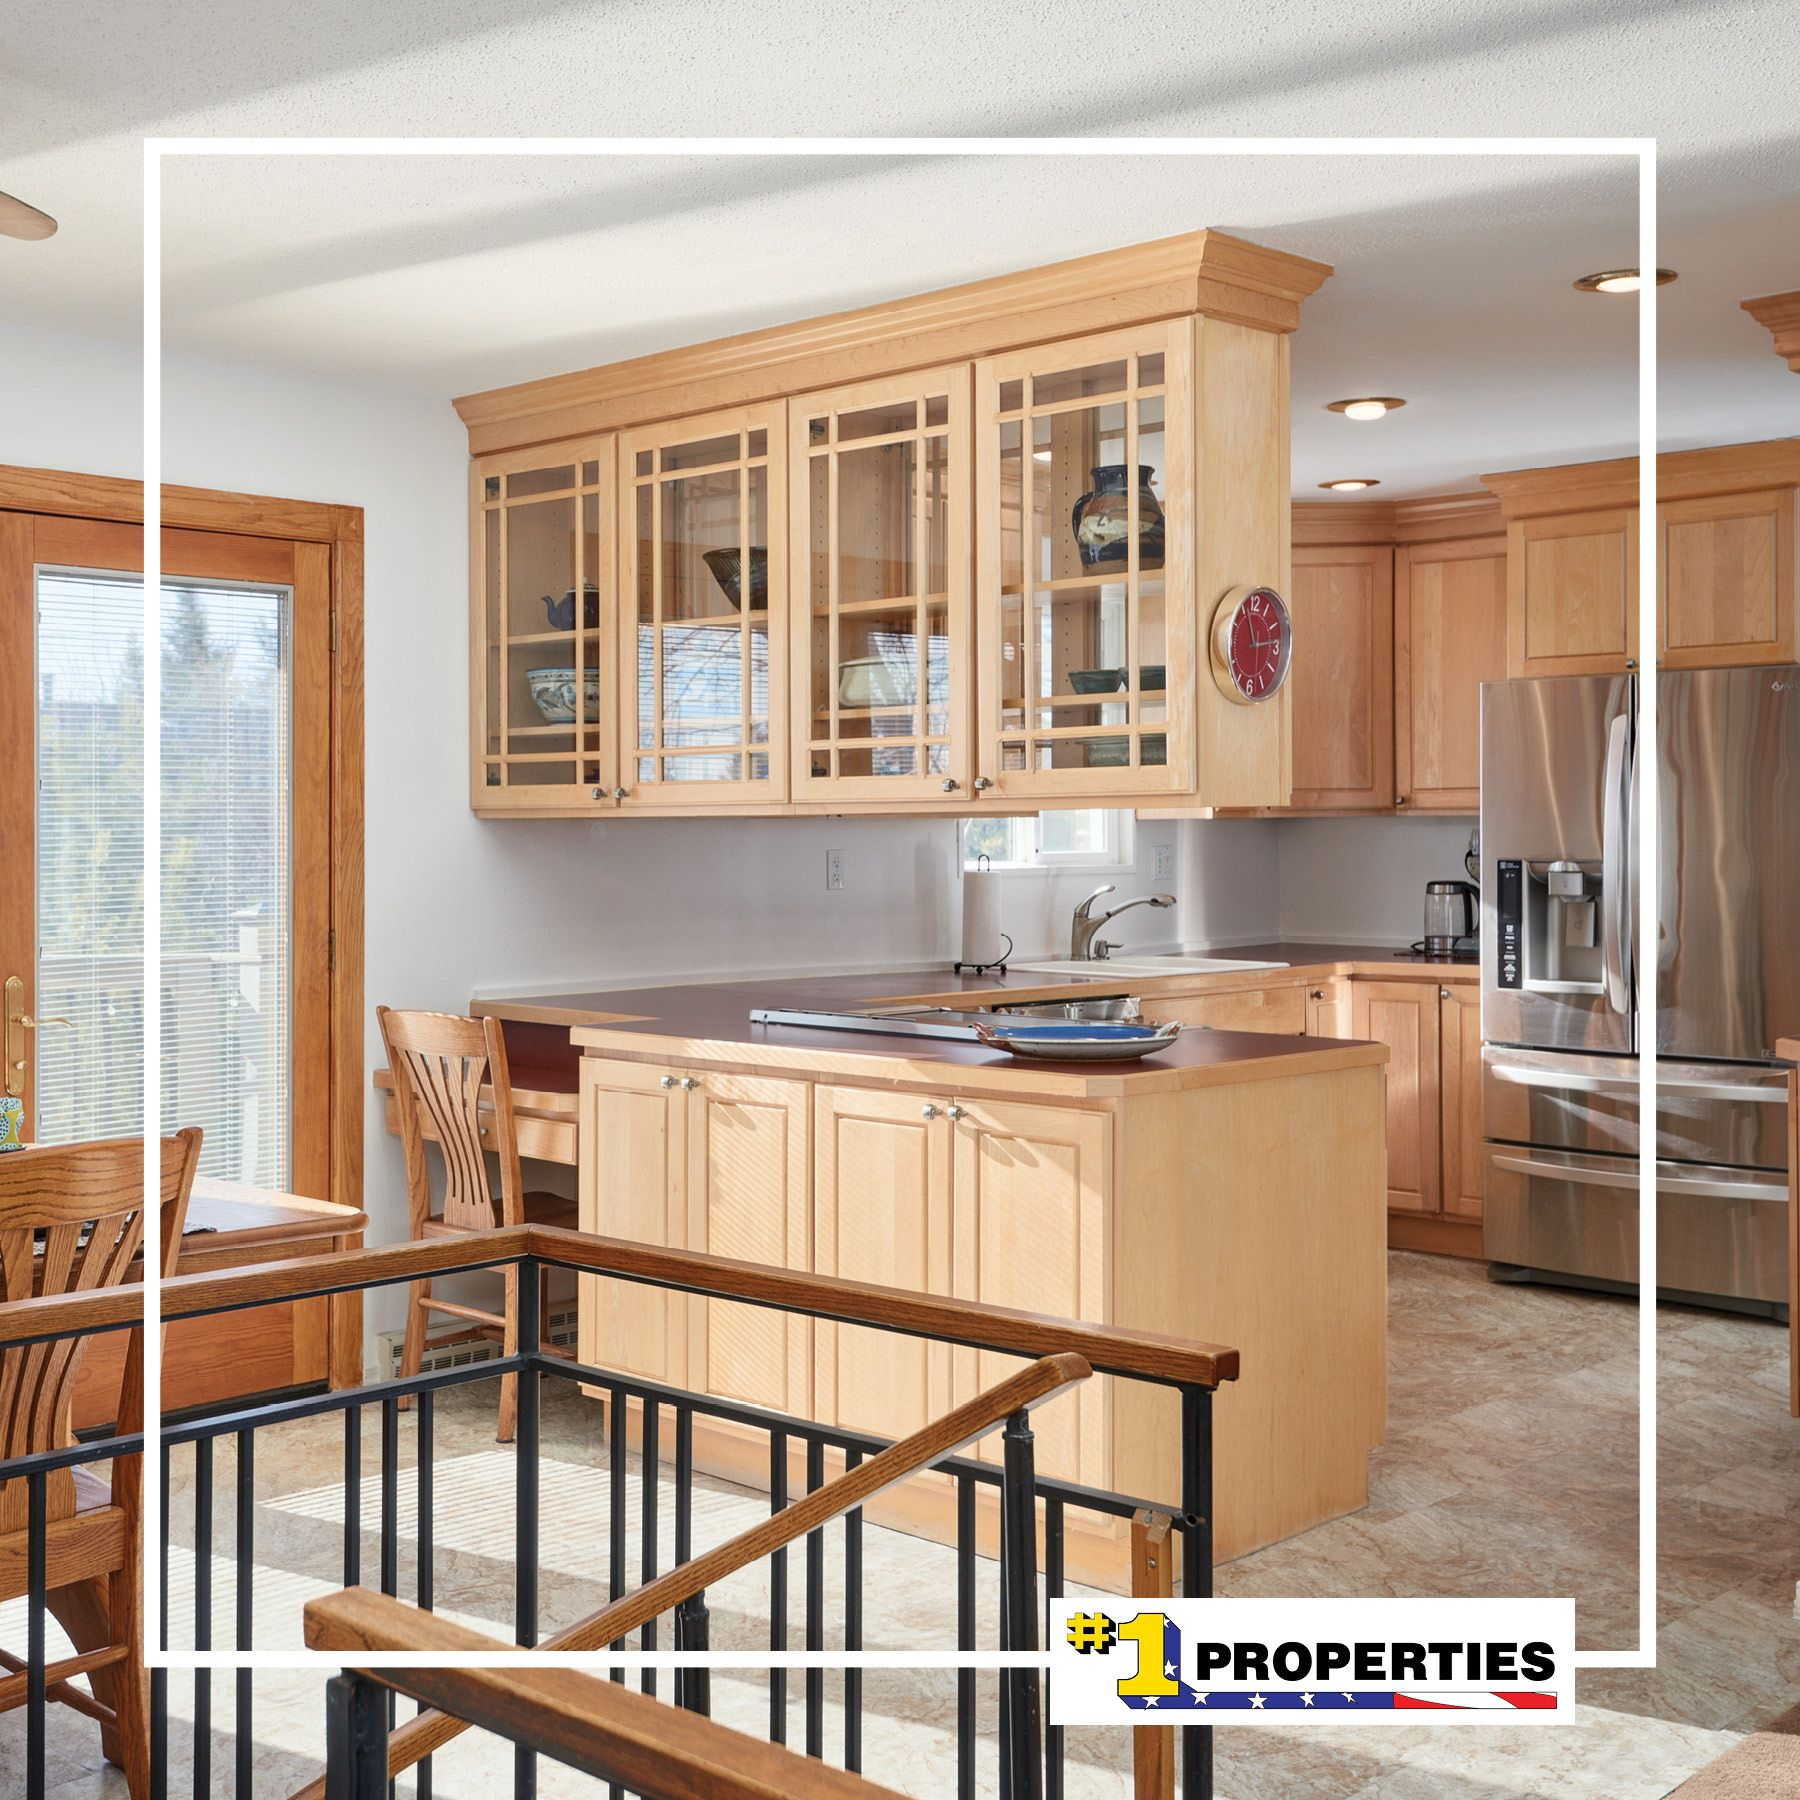 Those Double Sided Glass Cabinets Openhousesaturday 921 Ranger Drive Cheyenne Wyoming Cheyenneho In 2020 Kitchen Design Trends Kitchen Design Gorgeous Kitchens